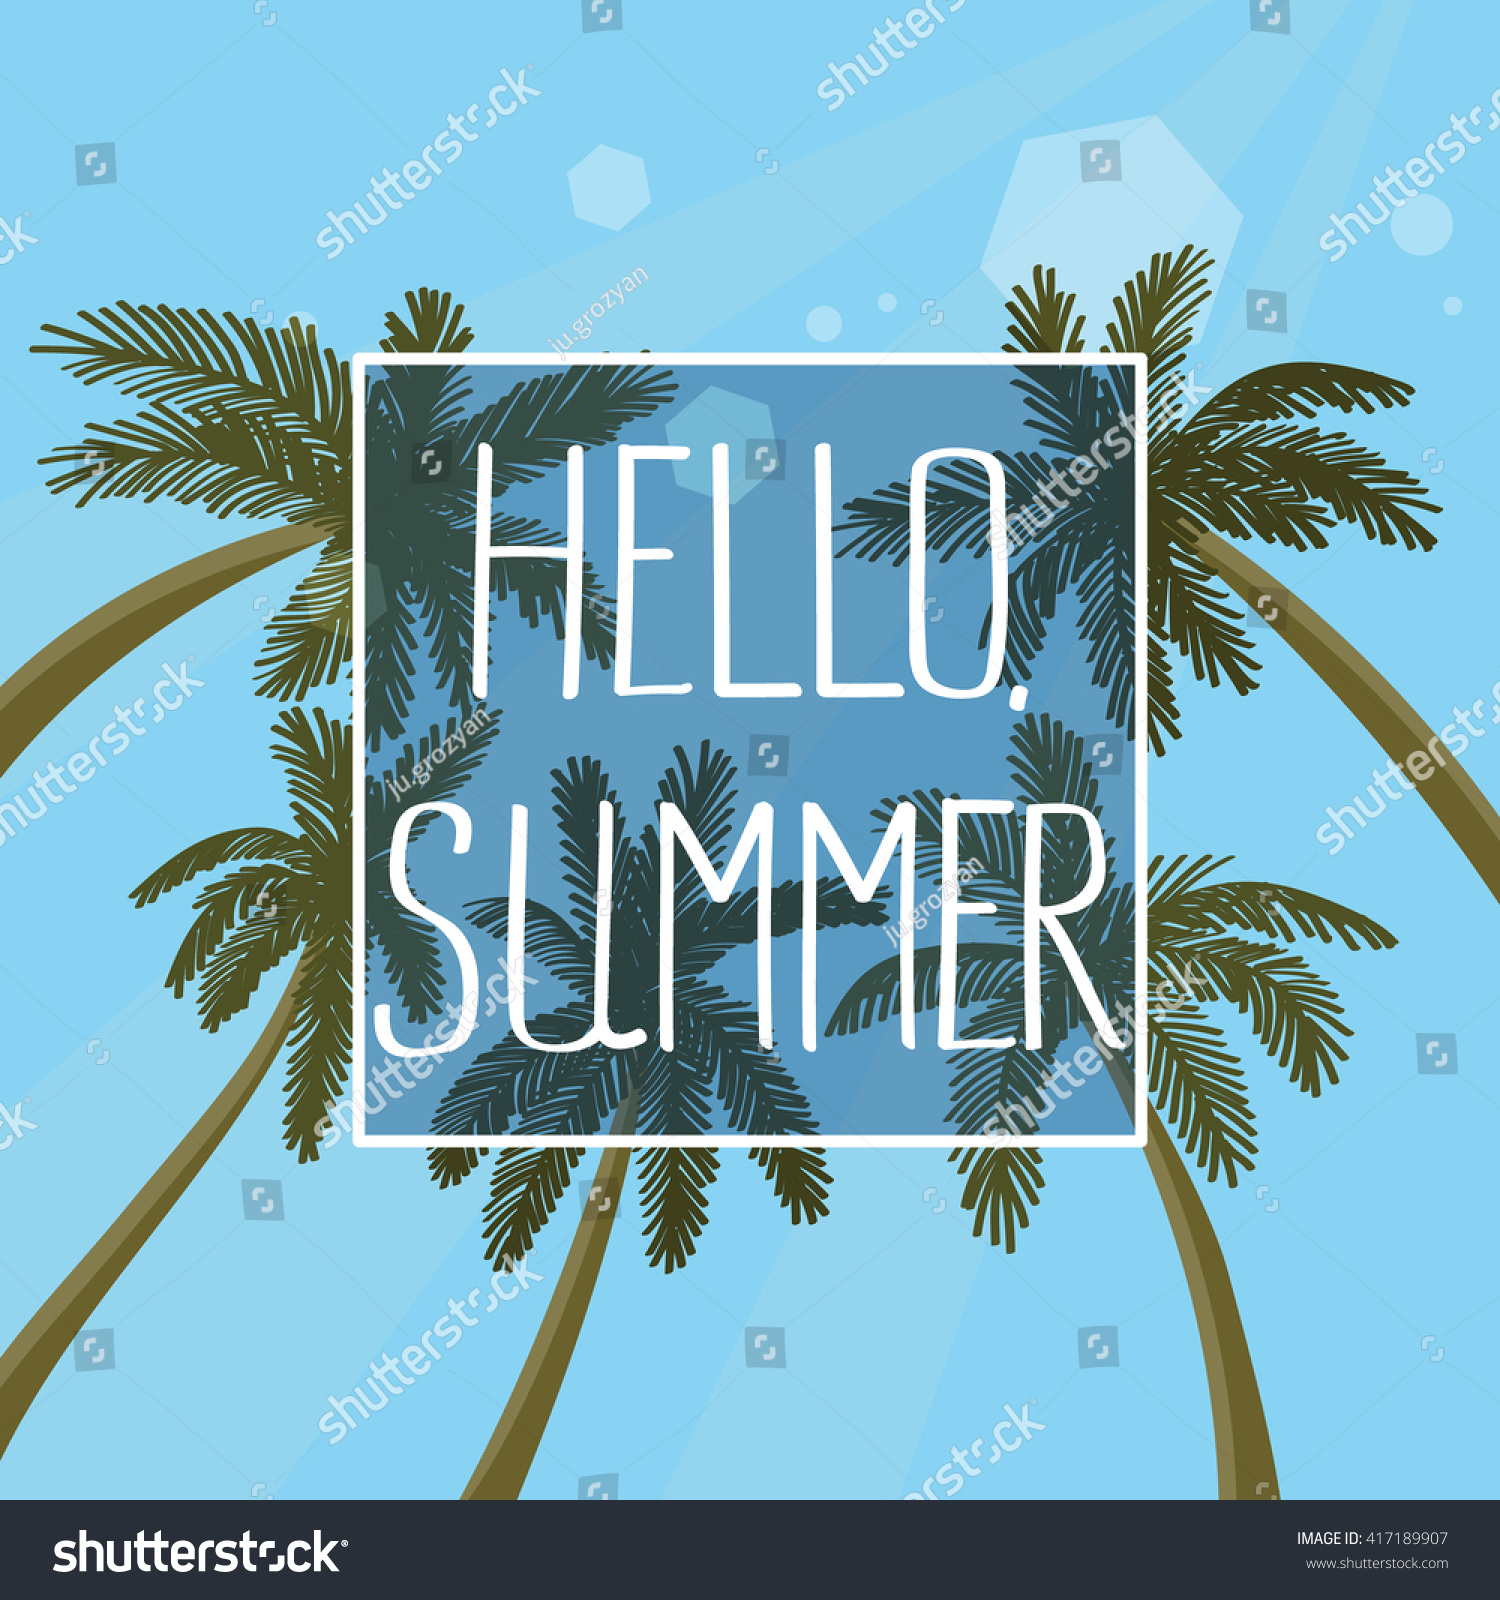 Hello Summer Hand Drawn Lettering Quote On A Palm Trees Background With  Blue Sky.